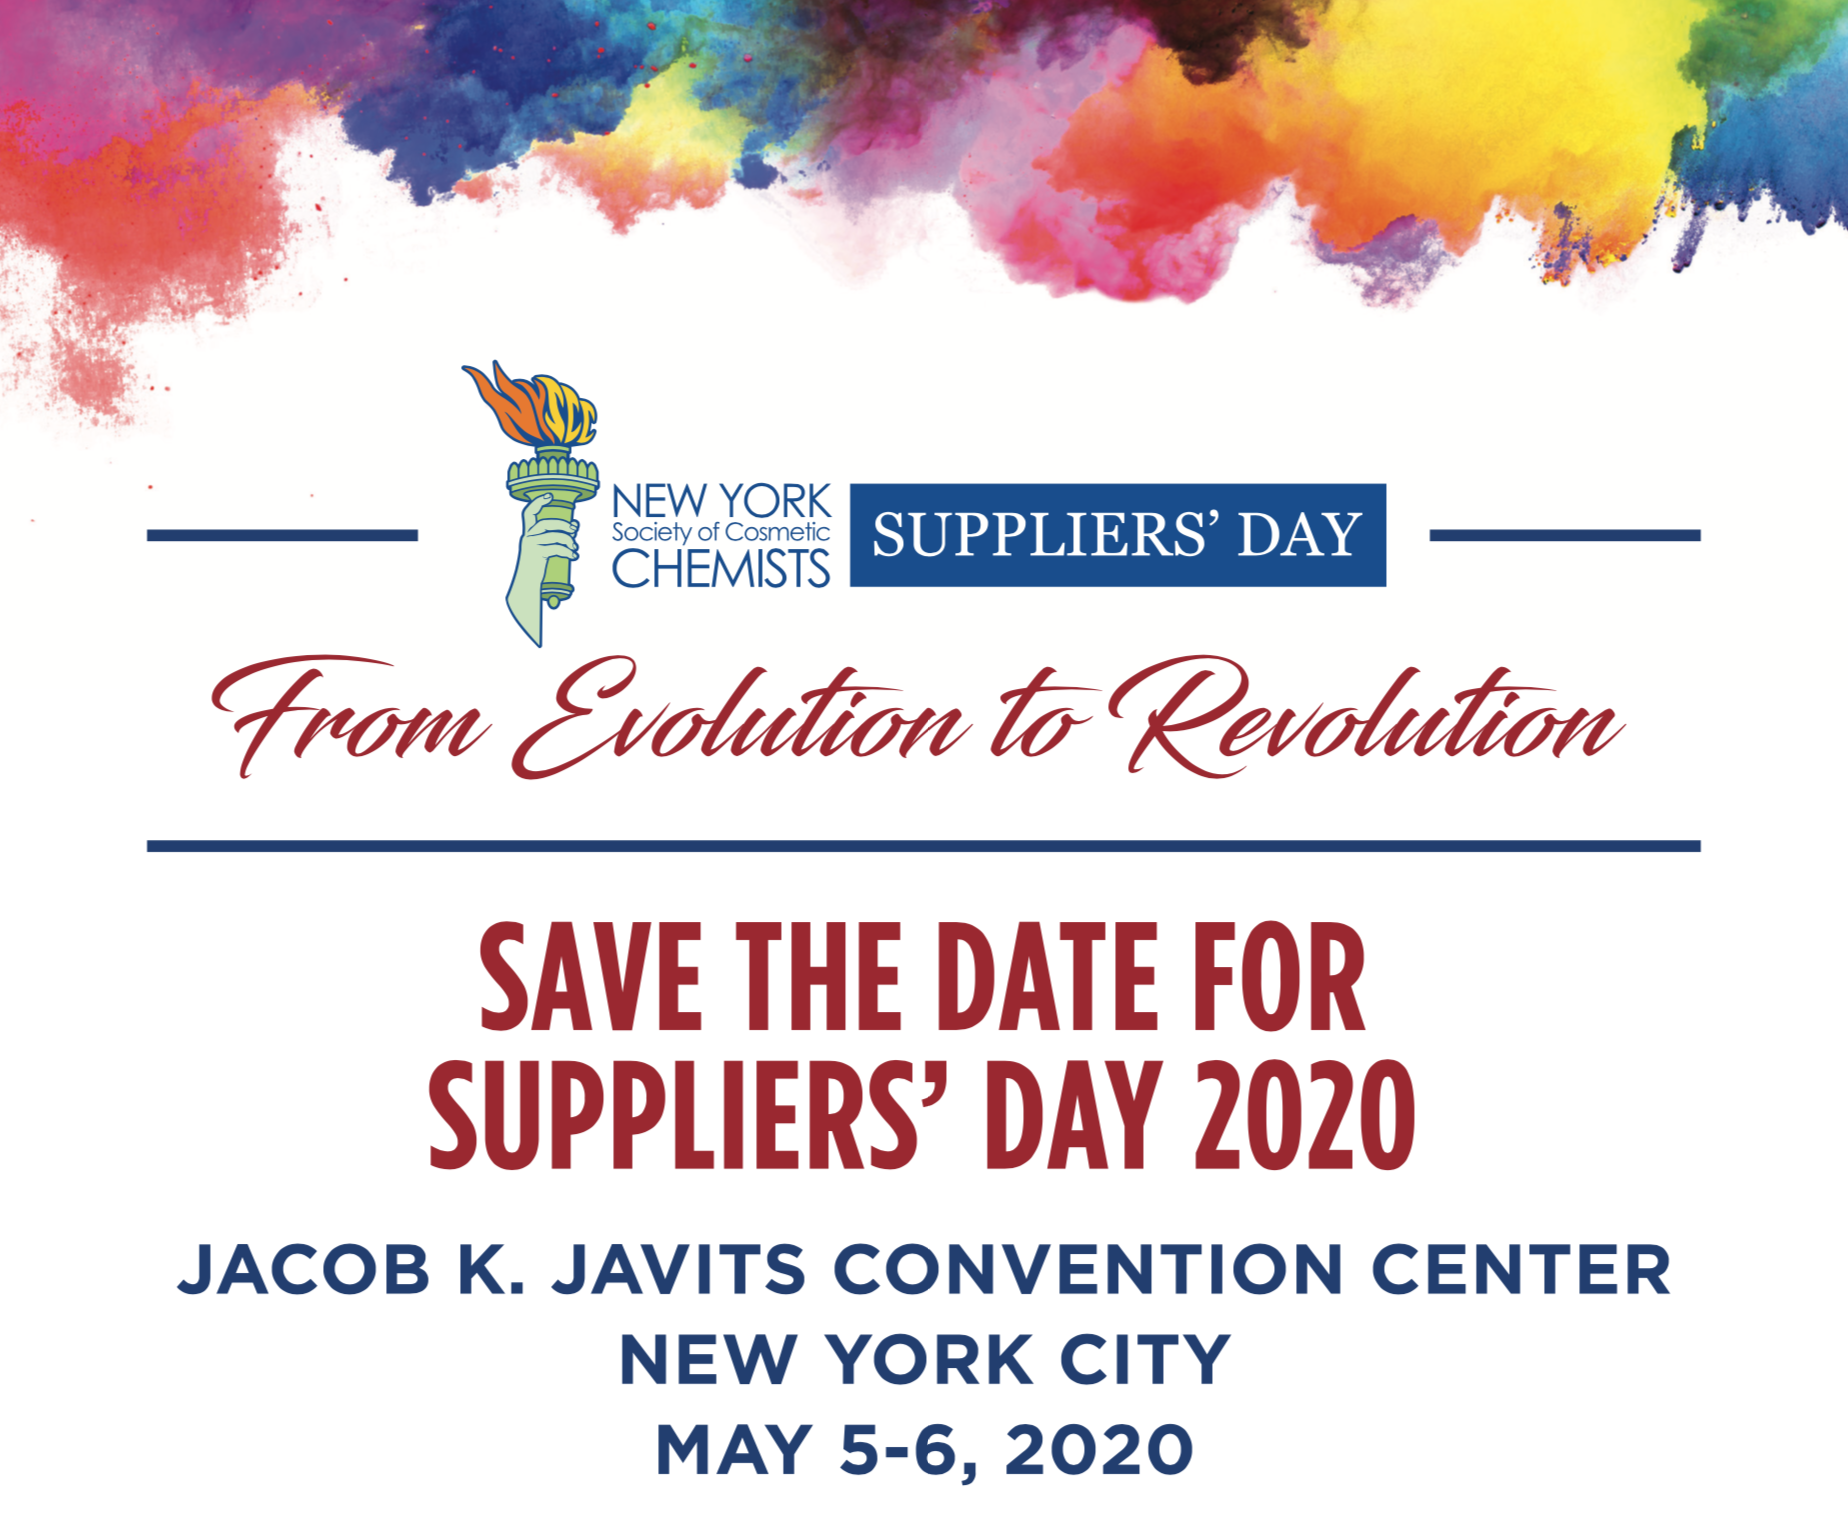 Suppliers' Day - NYSCC